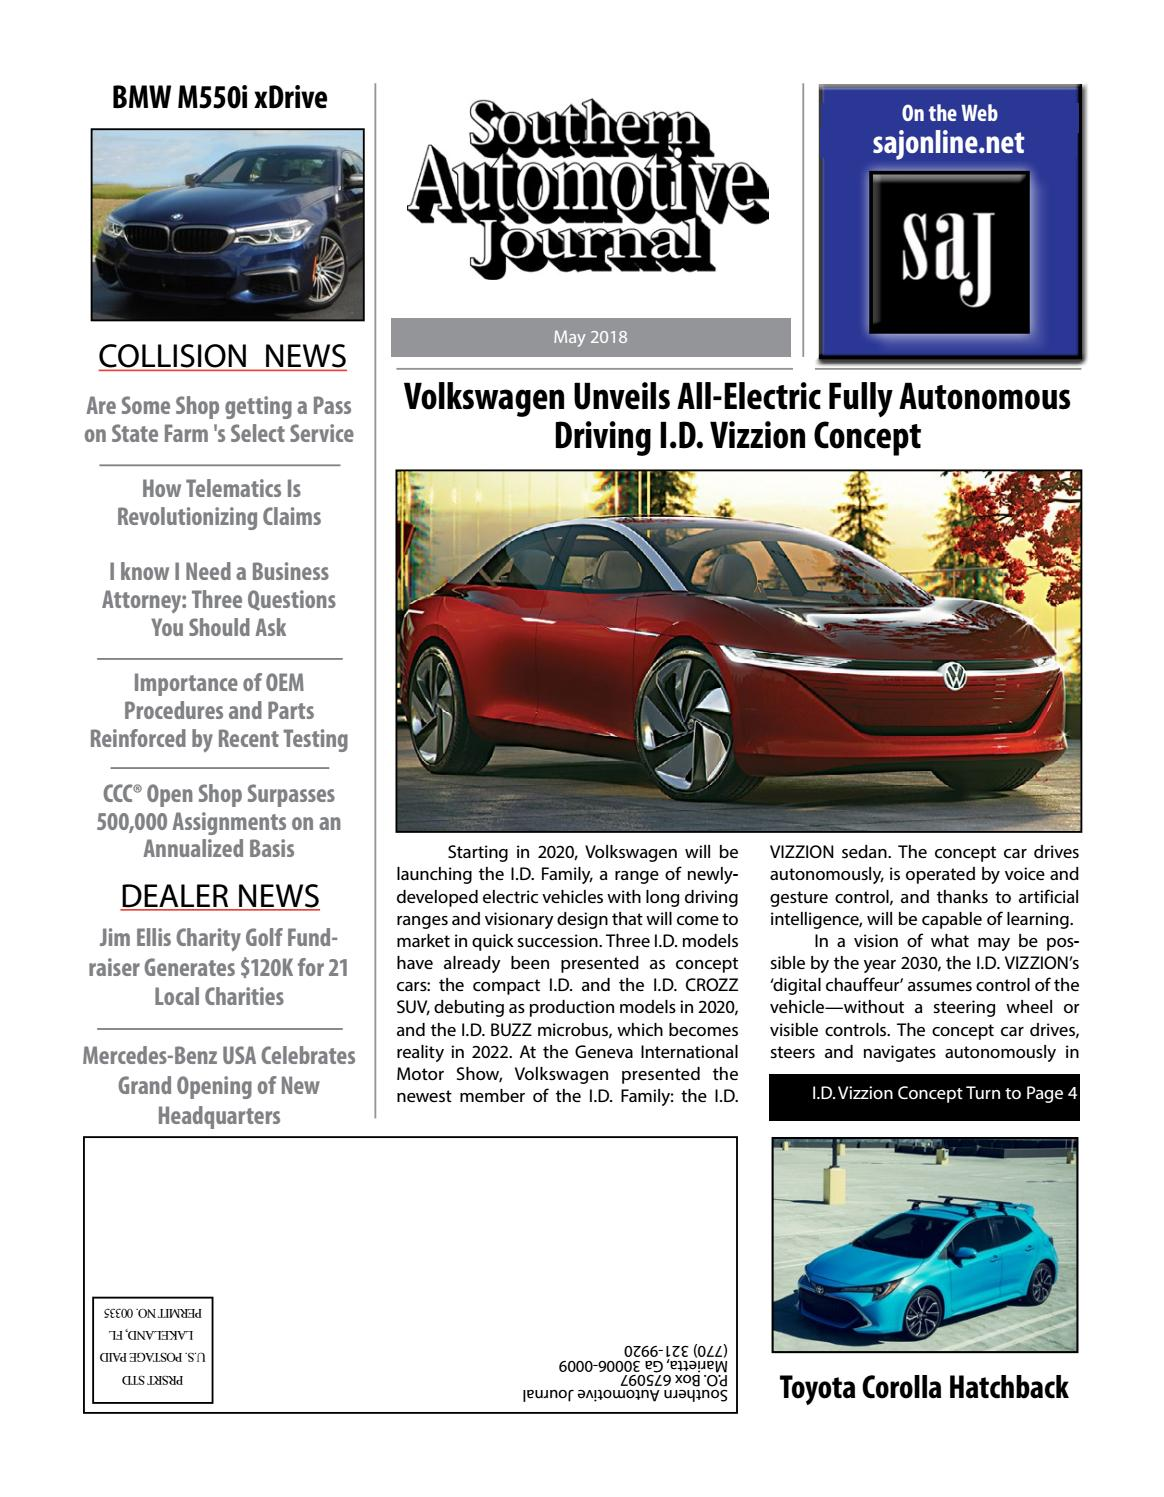 Southern Automotive Journal May 2018 Issue by Southern Automotive